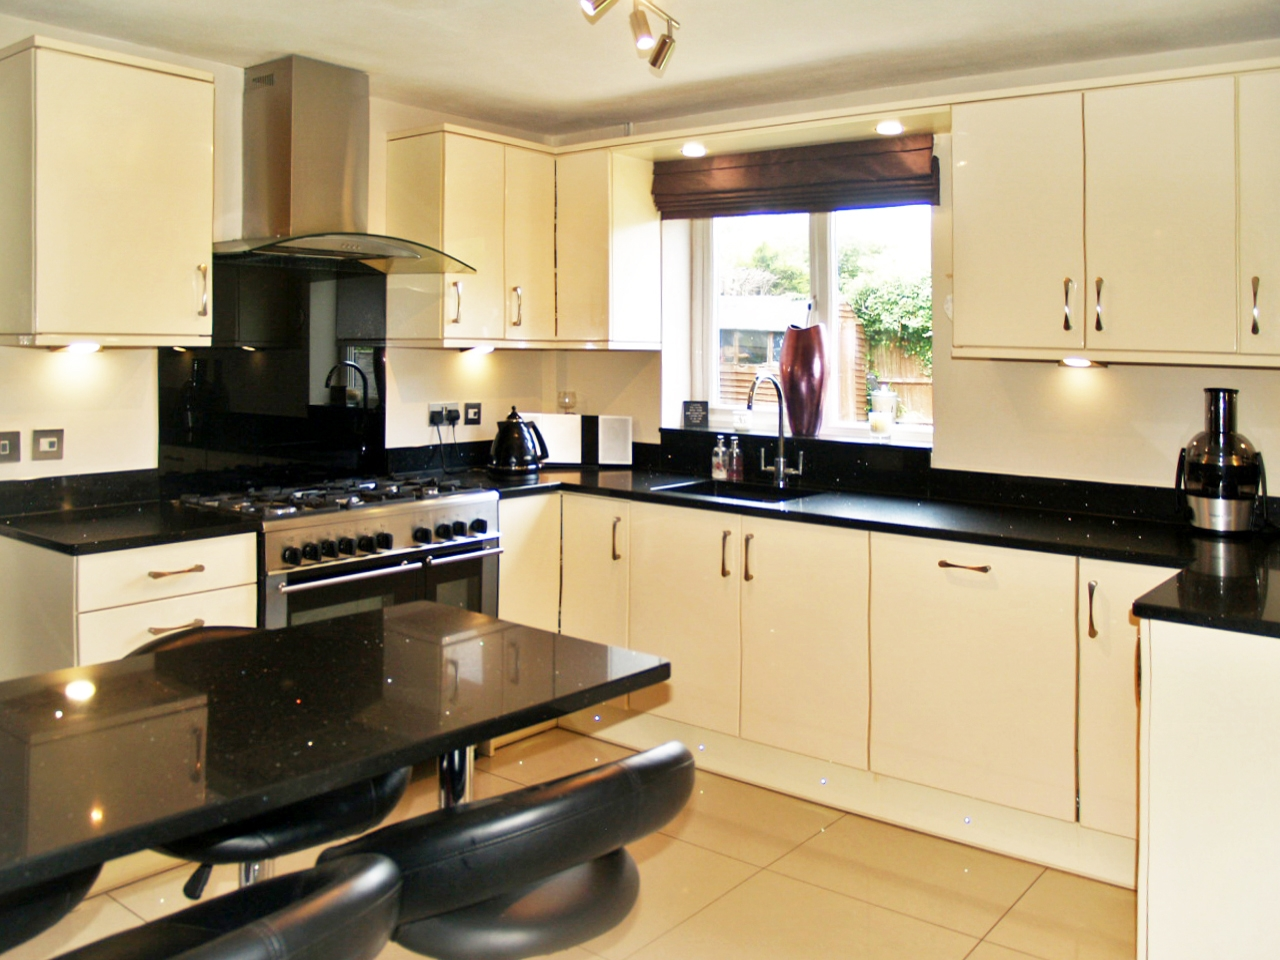 5 bedroom detached house SSTC in Solihull - photograph 7.